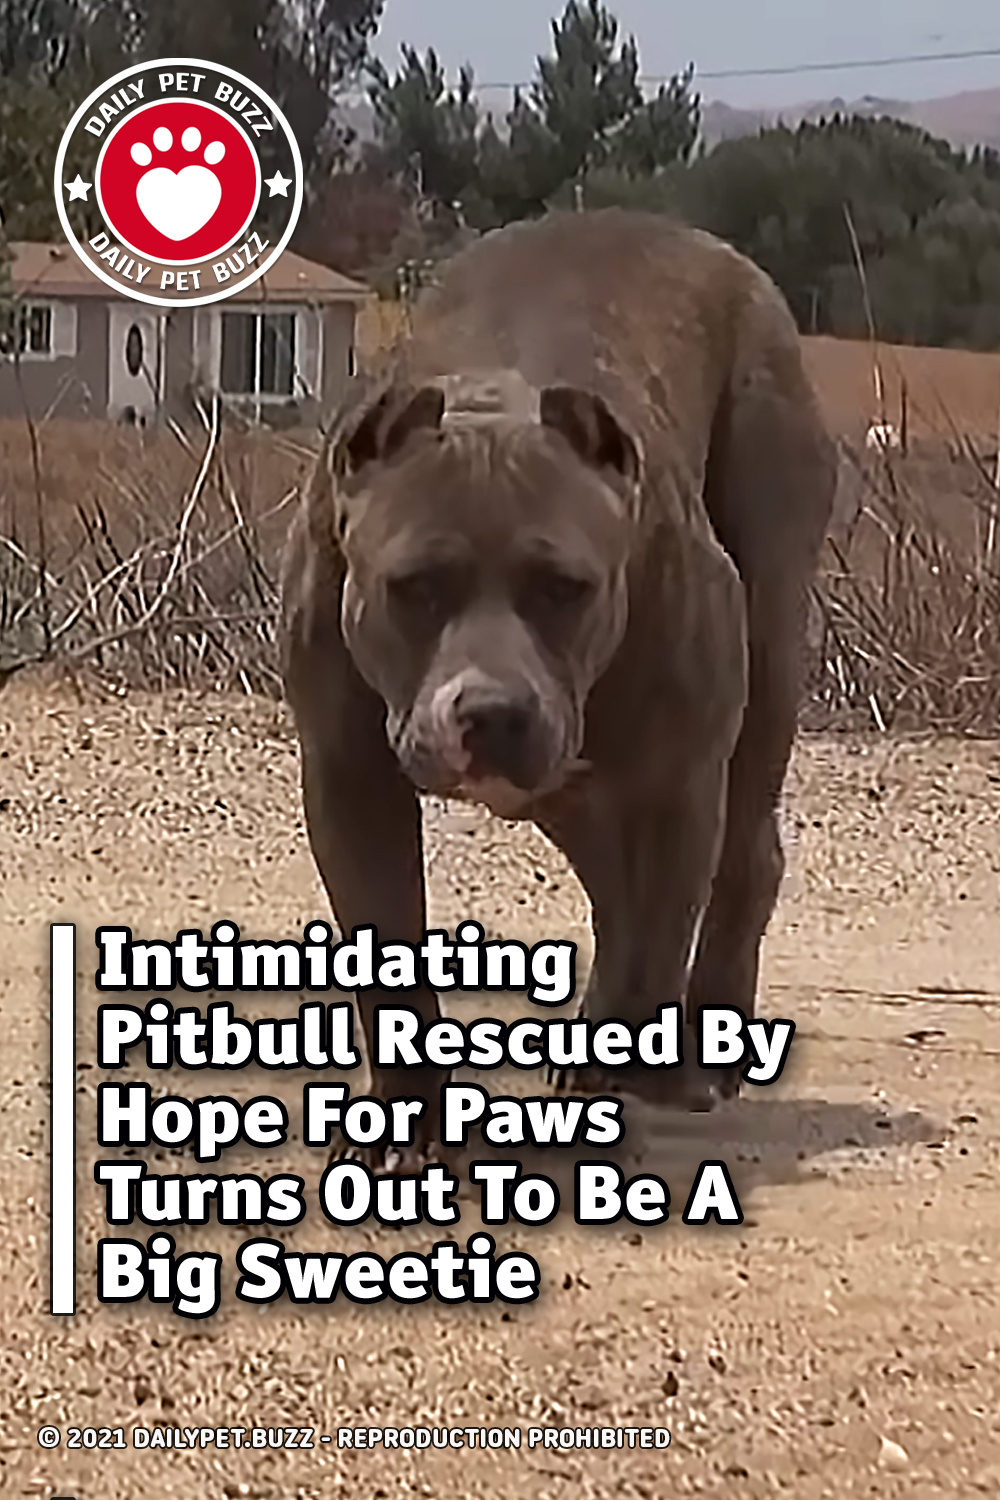 Intimidating Pitbull Rescued By Hope For Paws Turns Out To Be A Big Sweetie